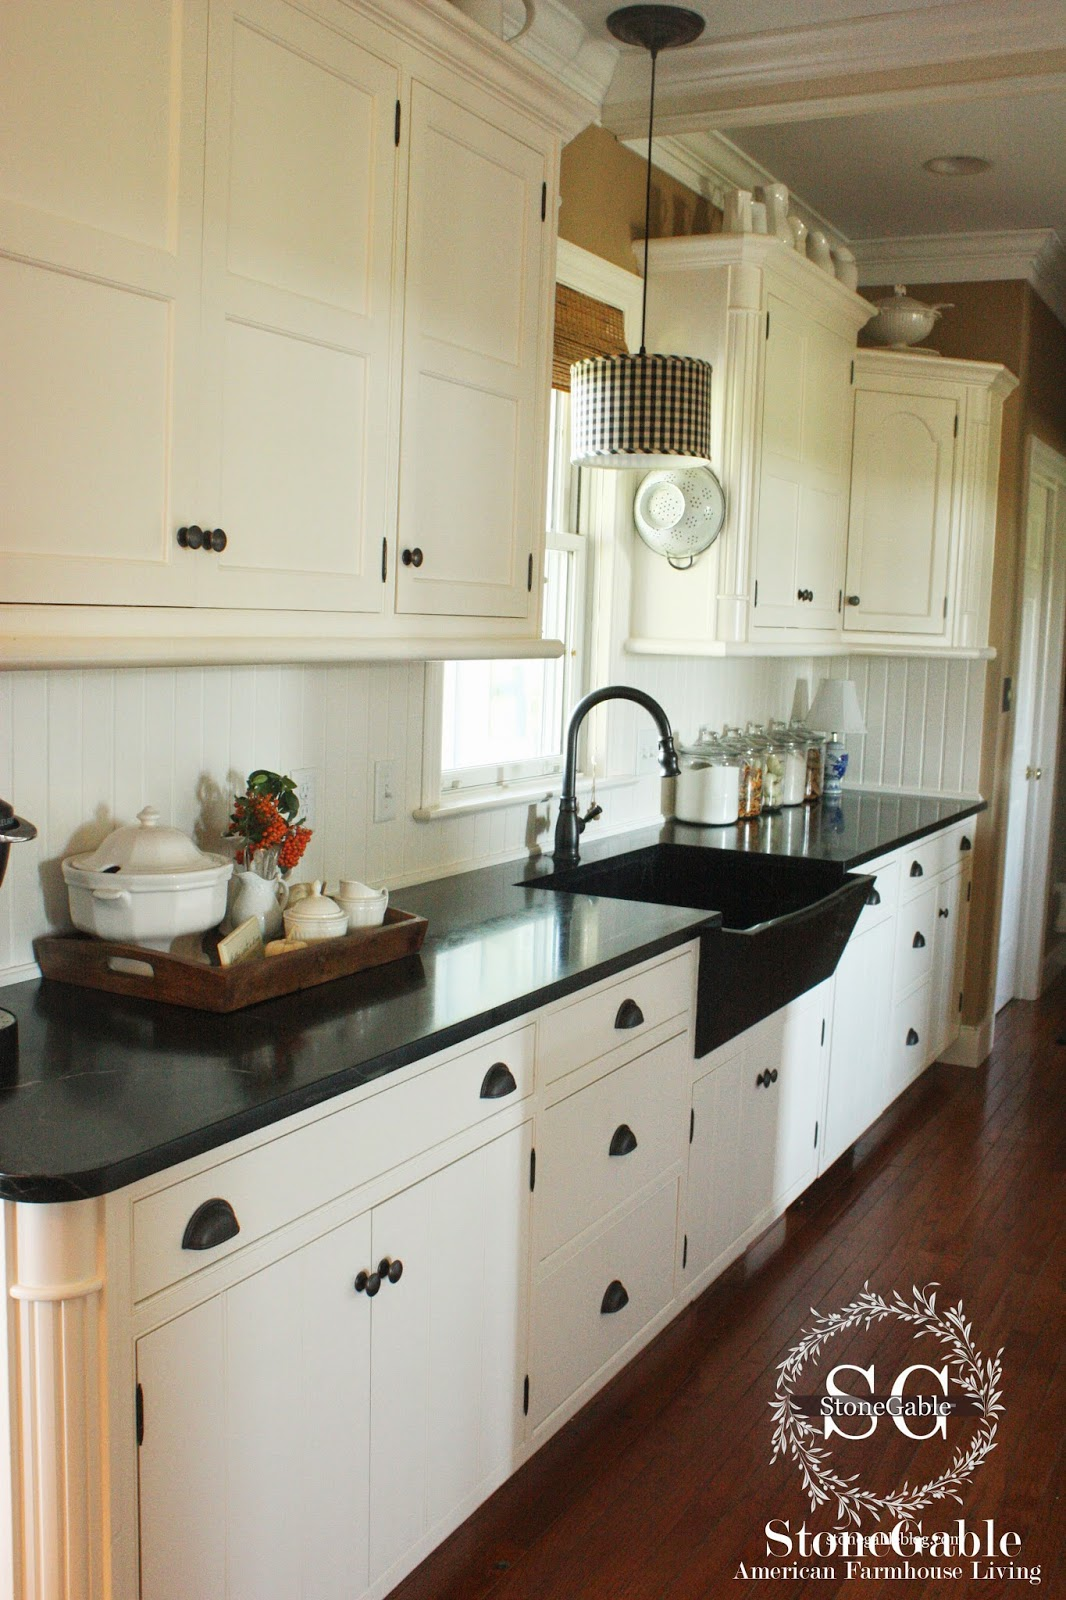 Farmhouse Kitchen Design Ideas m farmhouse kitchen design ideas built in stoves oven black slated counter tops black tile floor 10 Elements Of A Farmhouse Kitchen